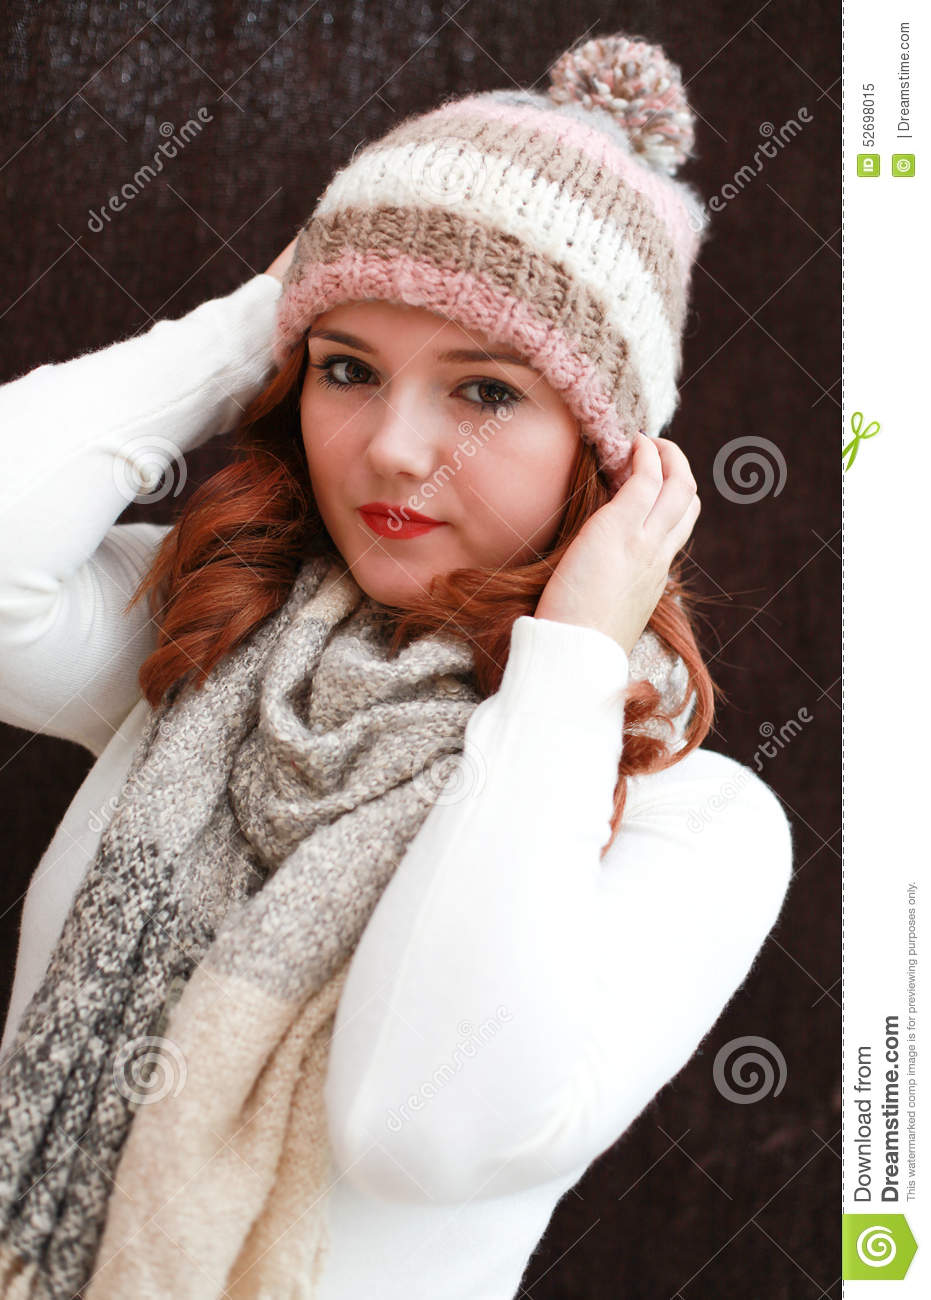 Pretty Red Headed Girl Wearing Pom Pom Hat And Scarf Stock Image ... 3b705997af4